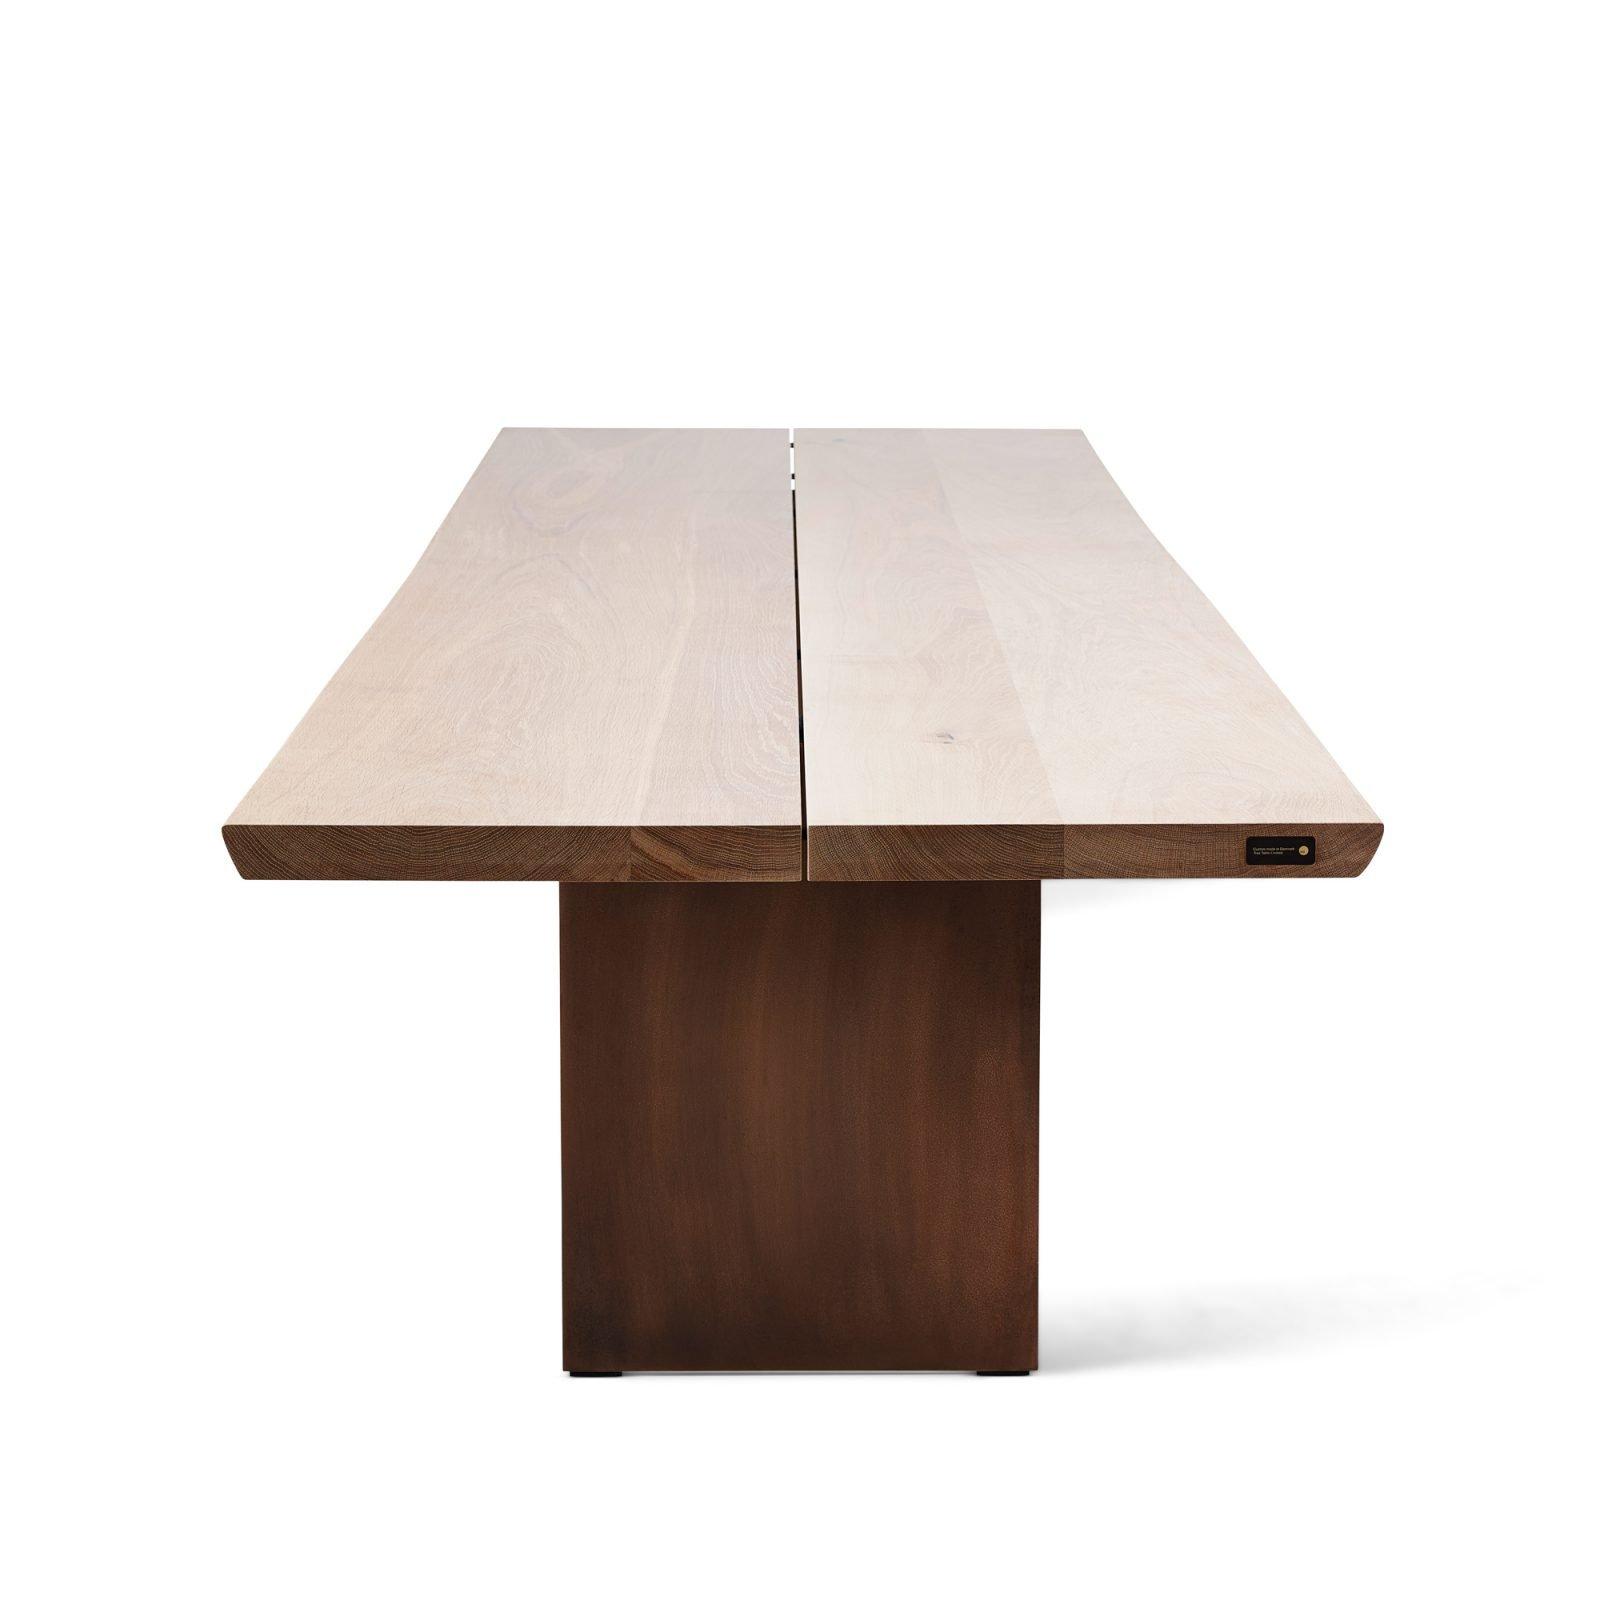 tree-coffee-table-7